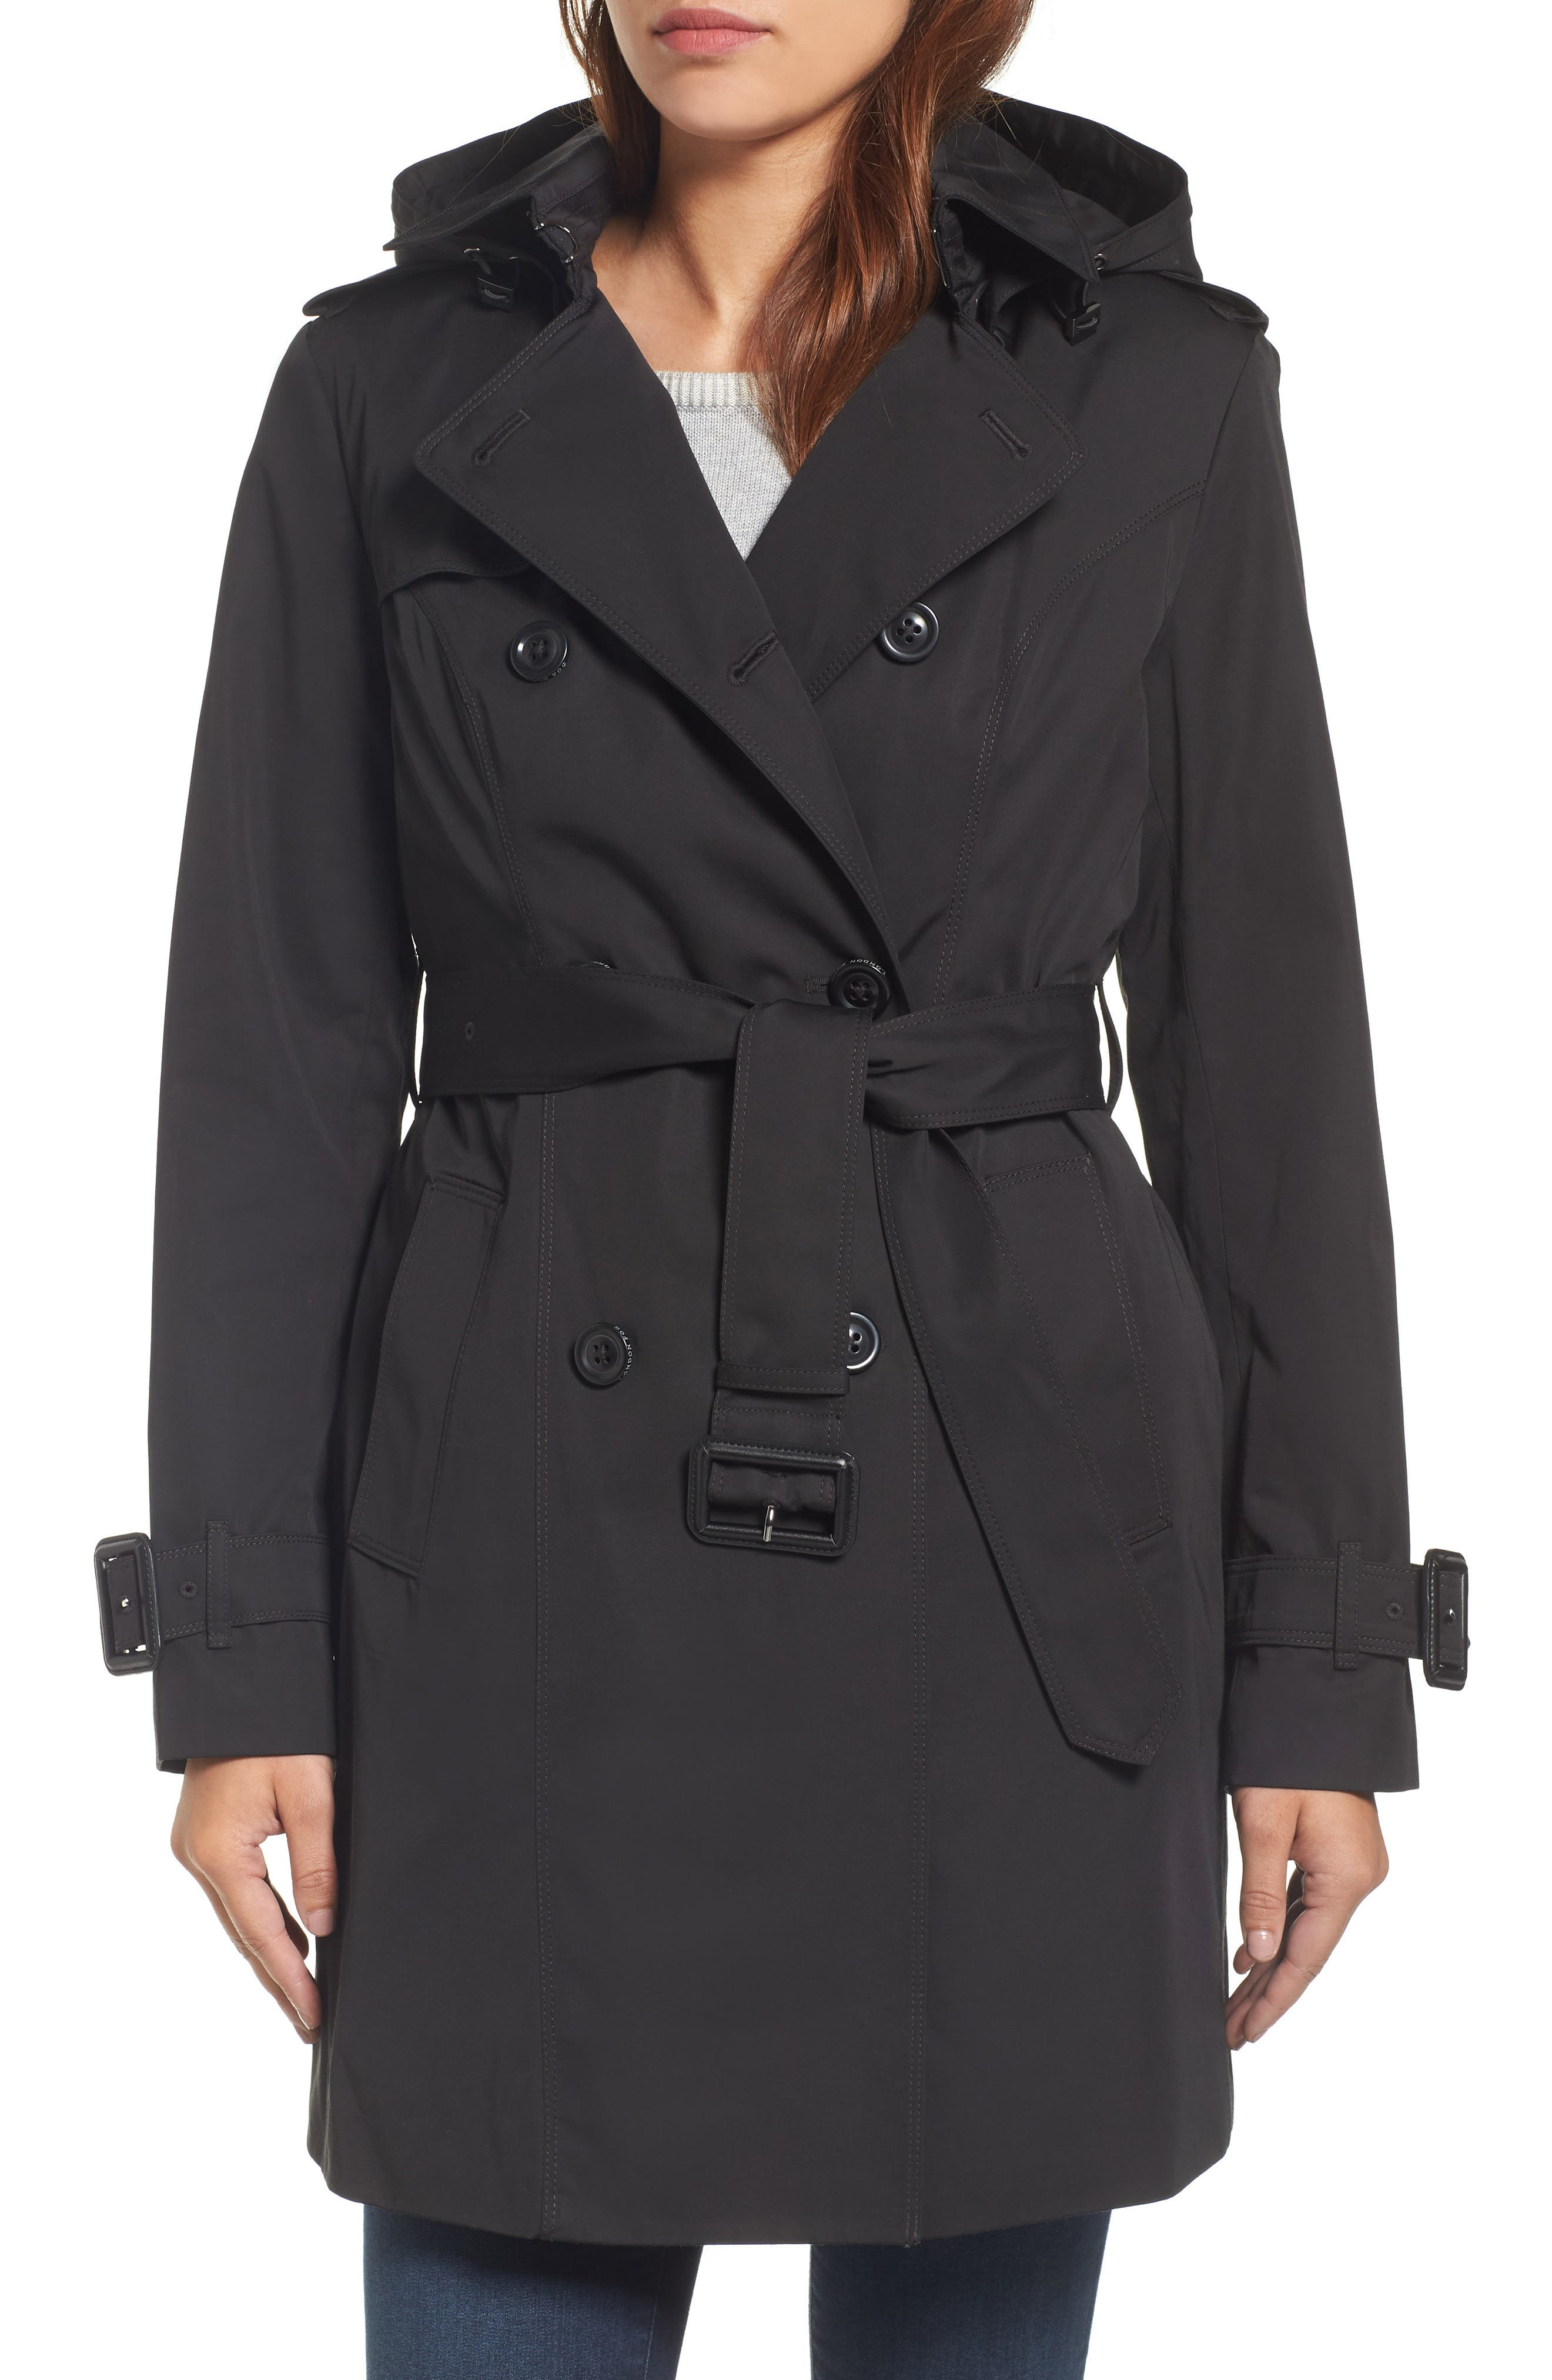 London Fog Heritage Trench Coat with Detachable Liner $178 (Nordstrom)